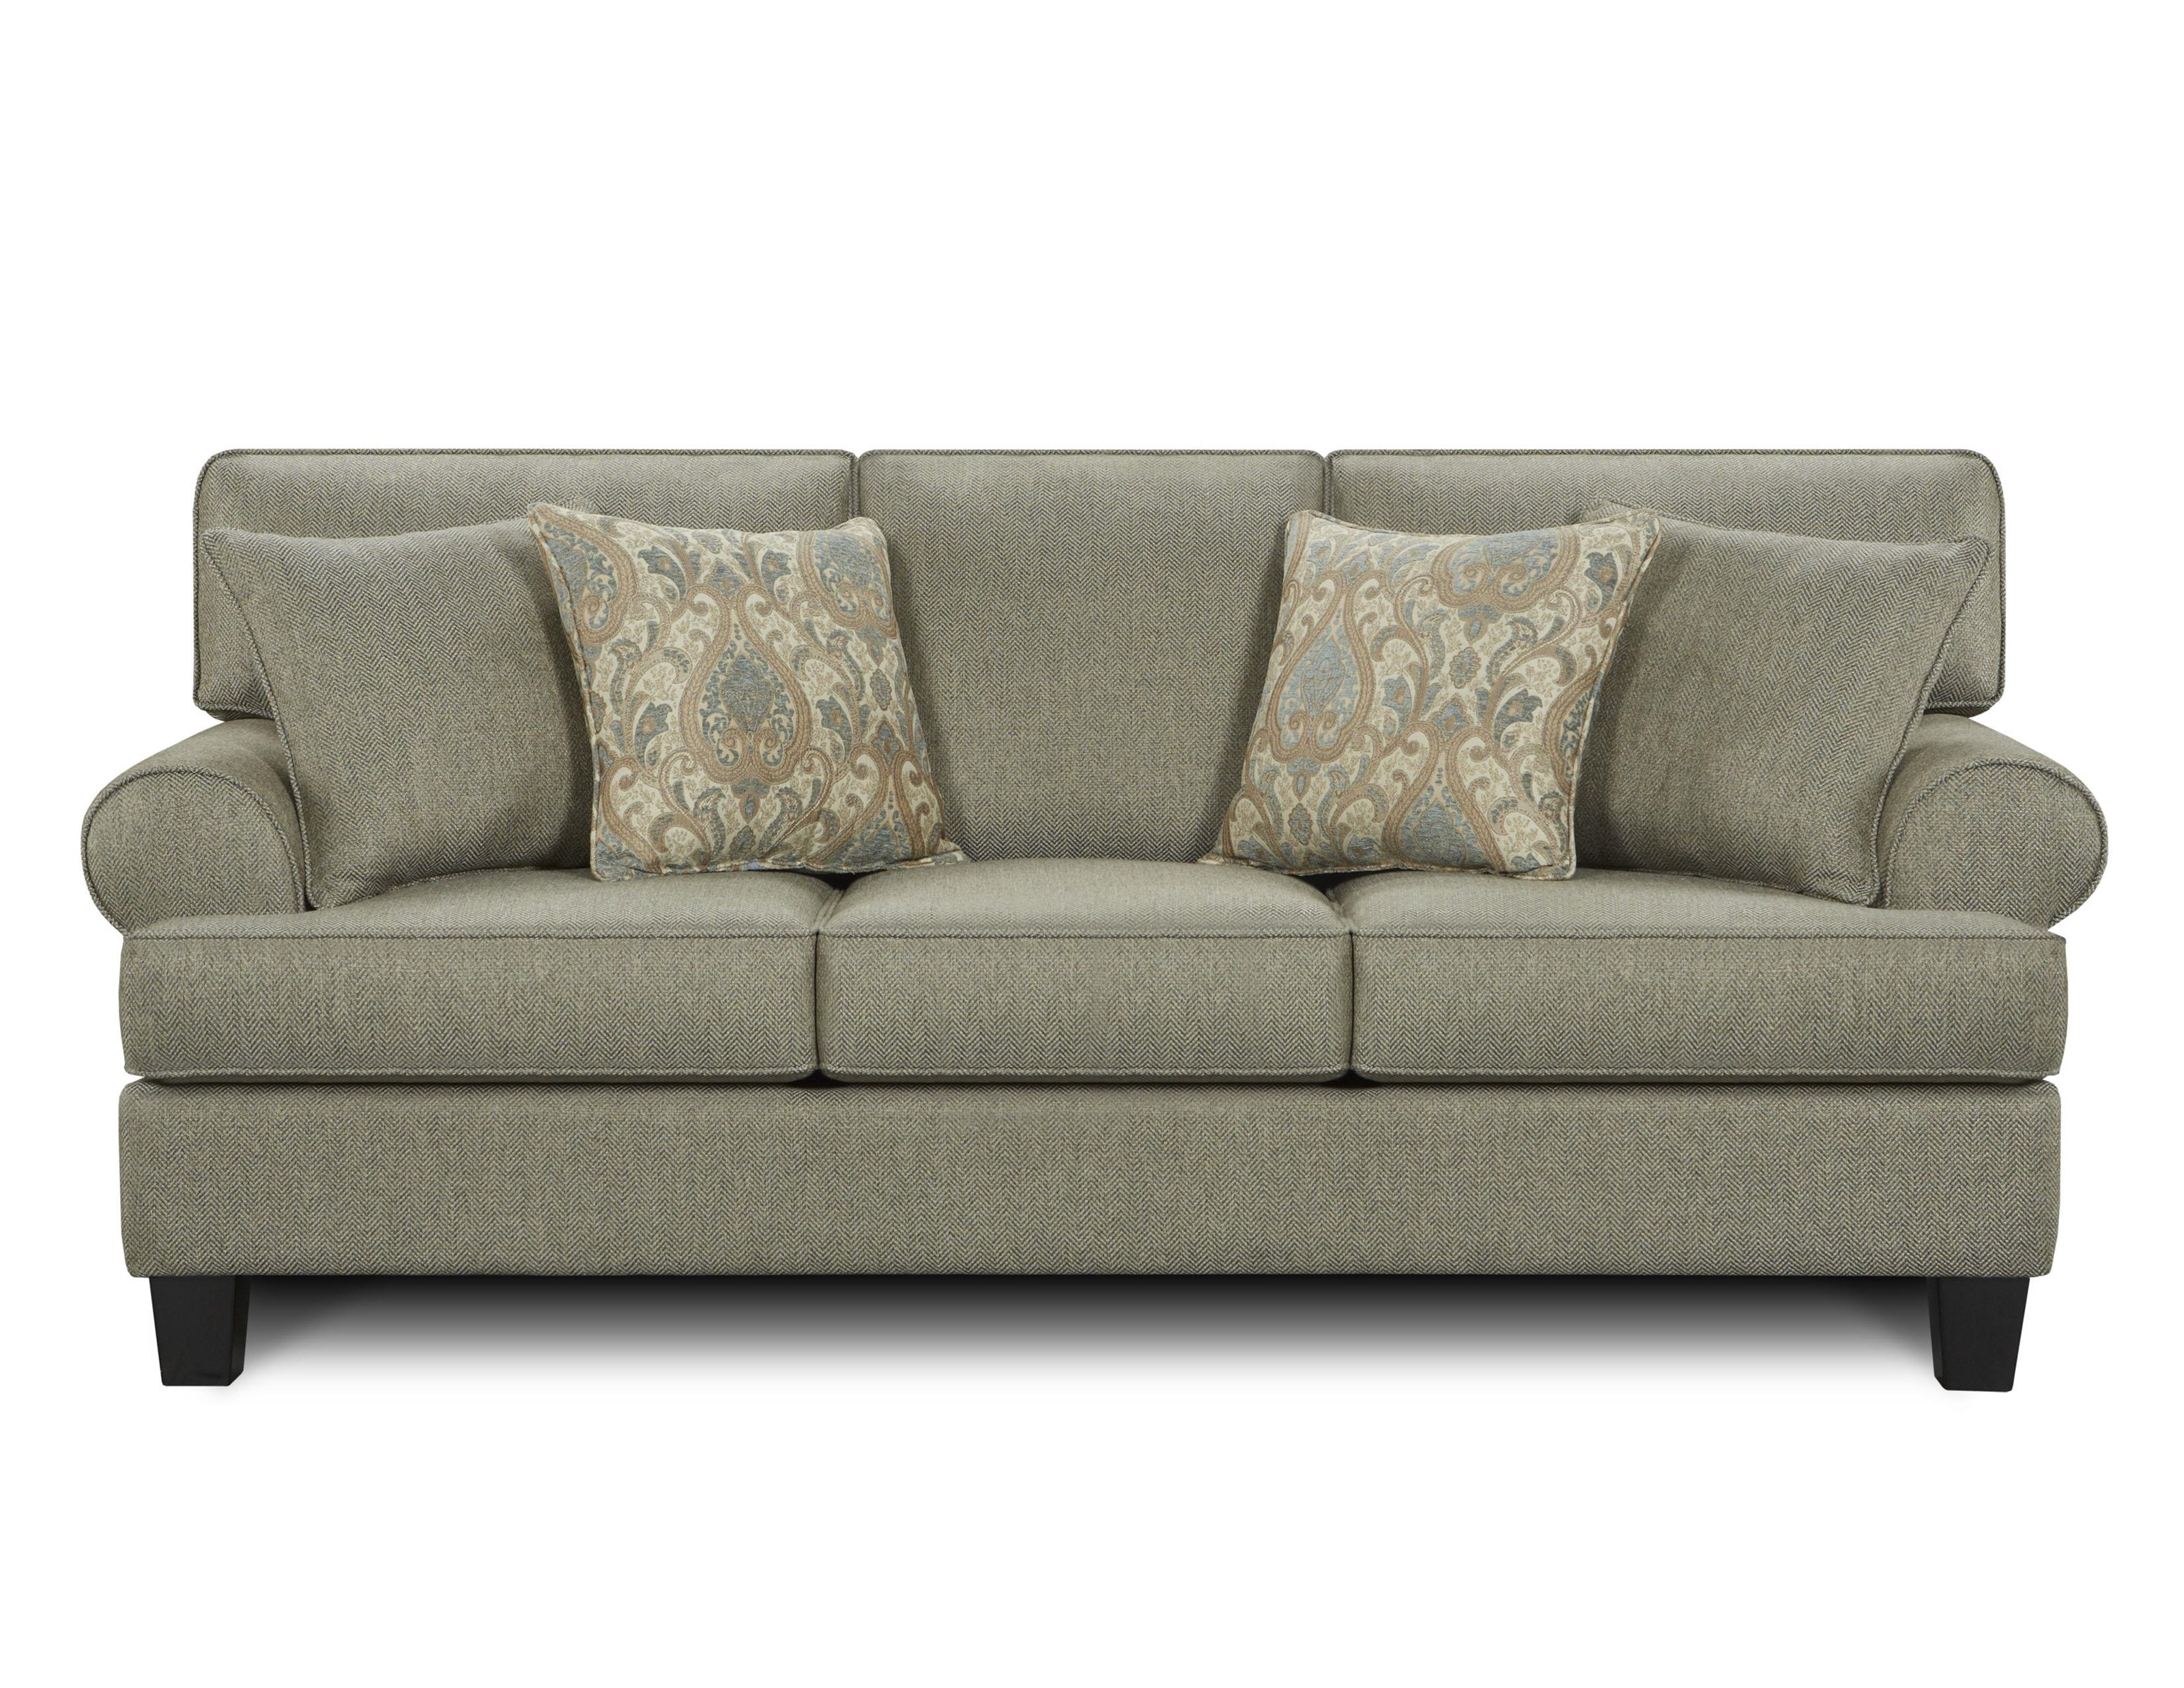 Sofa by J Henry